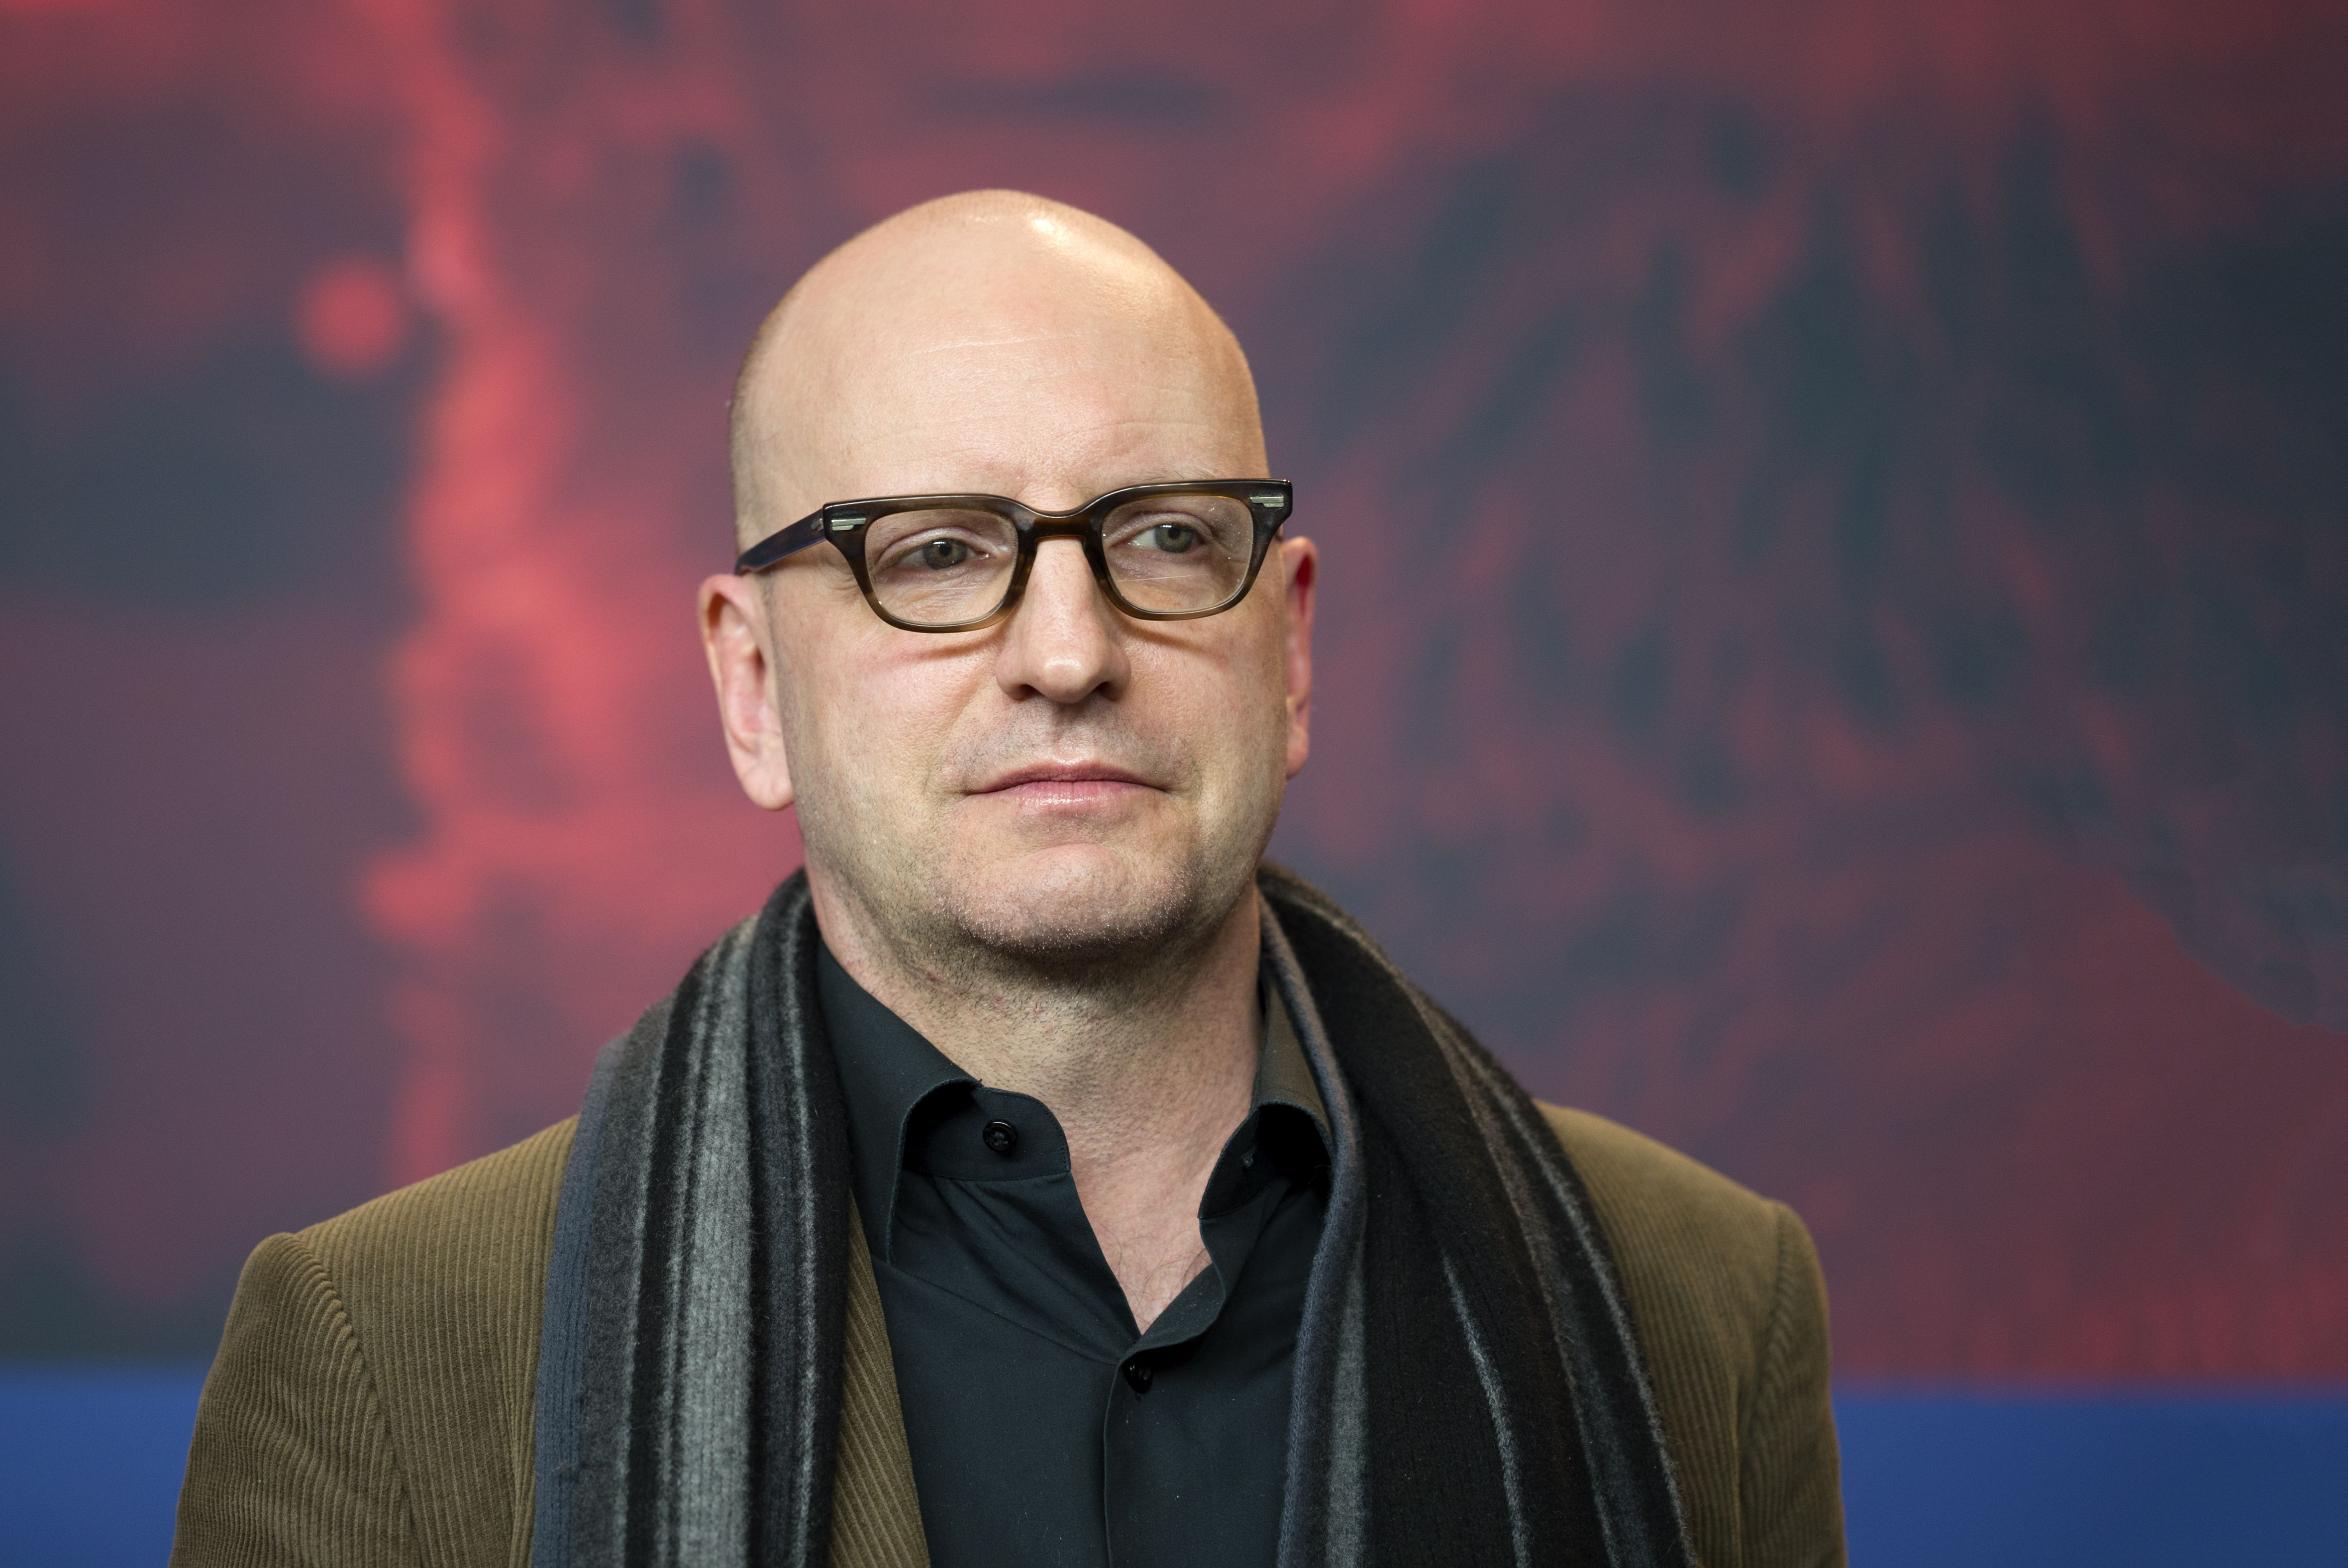 Steven SoderberghPress conference of the film Unsane during the 68.International Film Festival Berlinale, Berlin, Germany - 21 Feb 2018